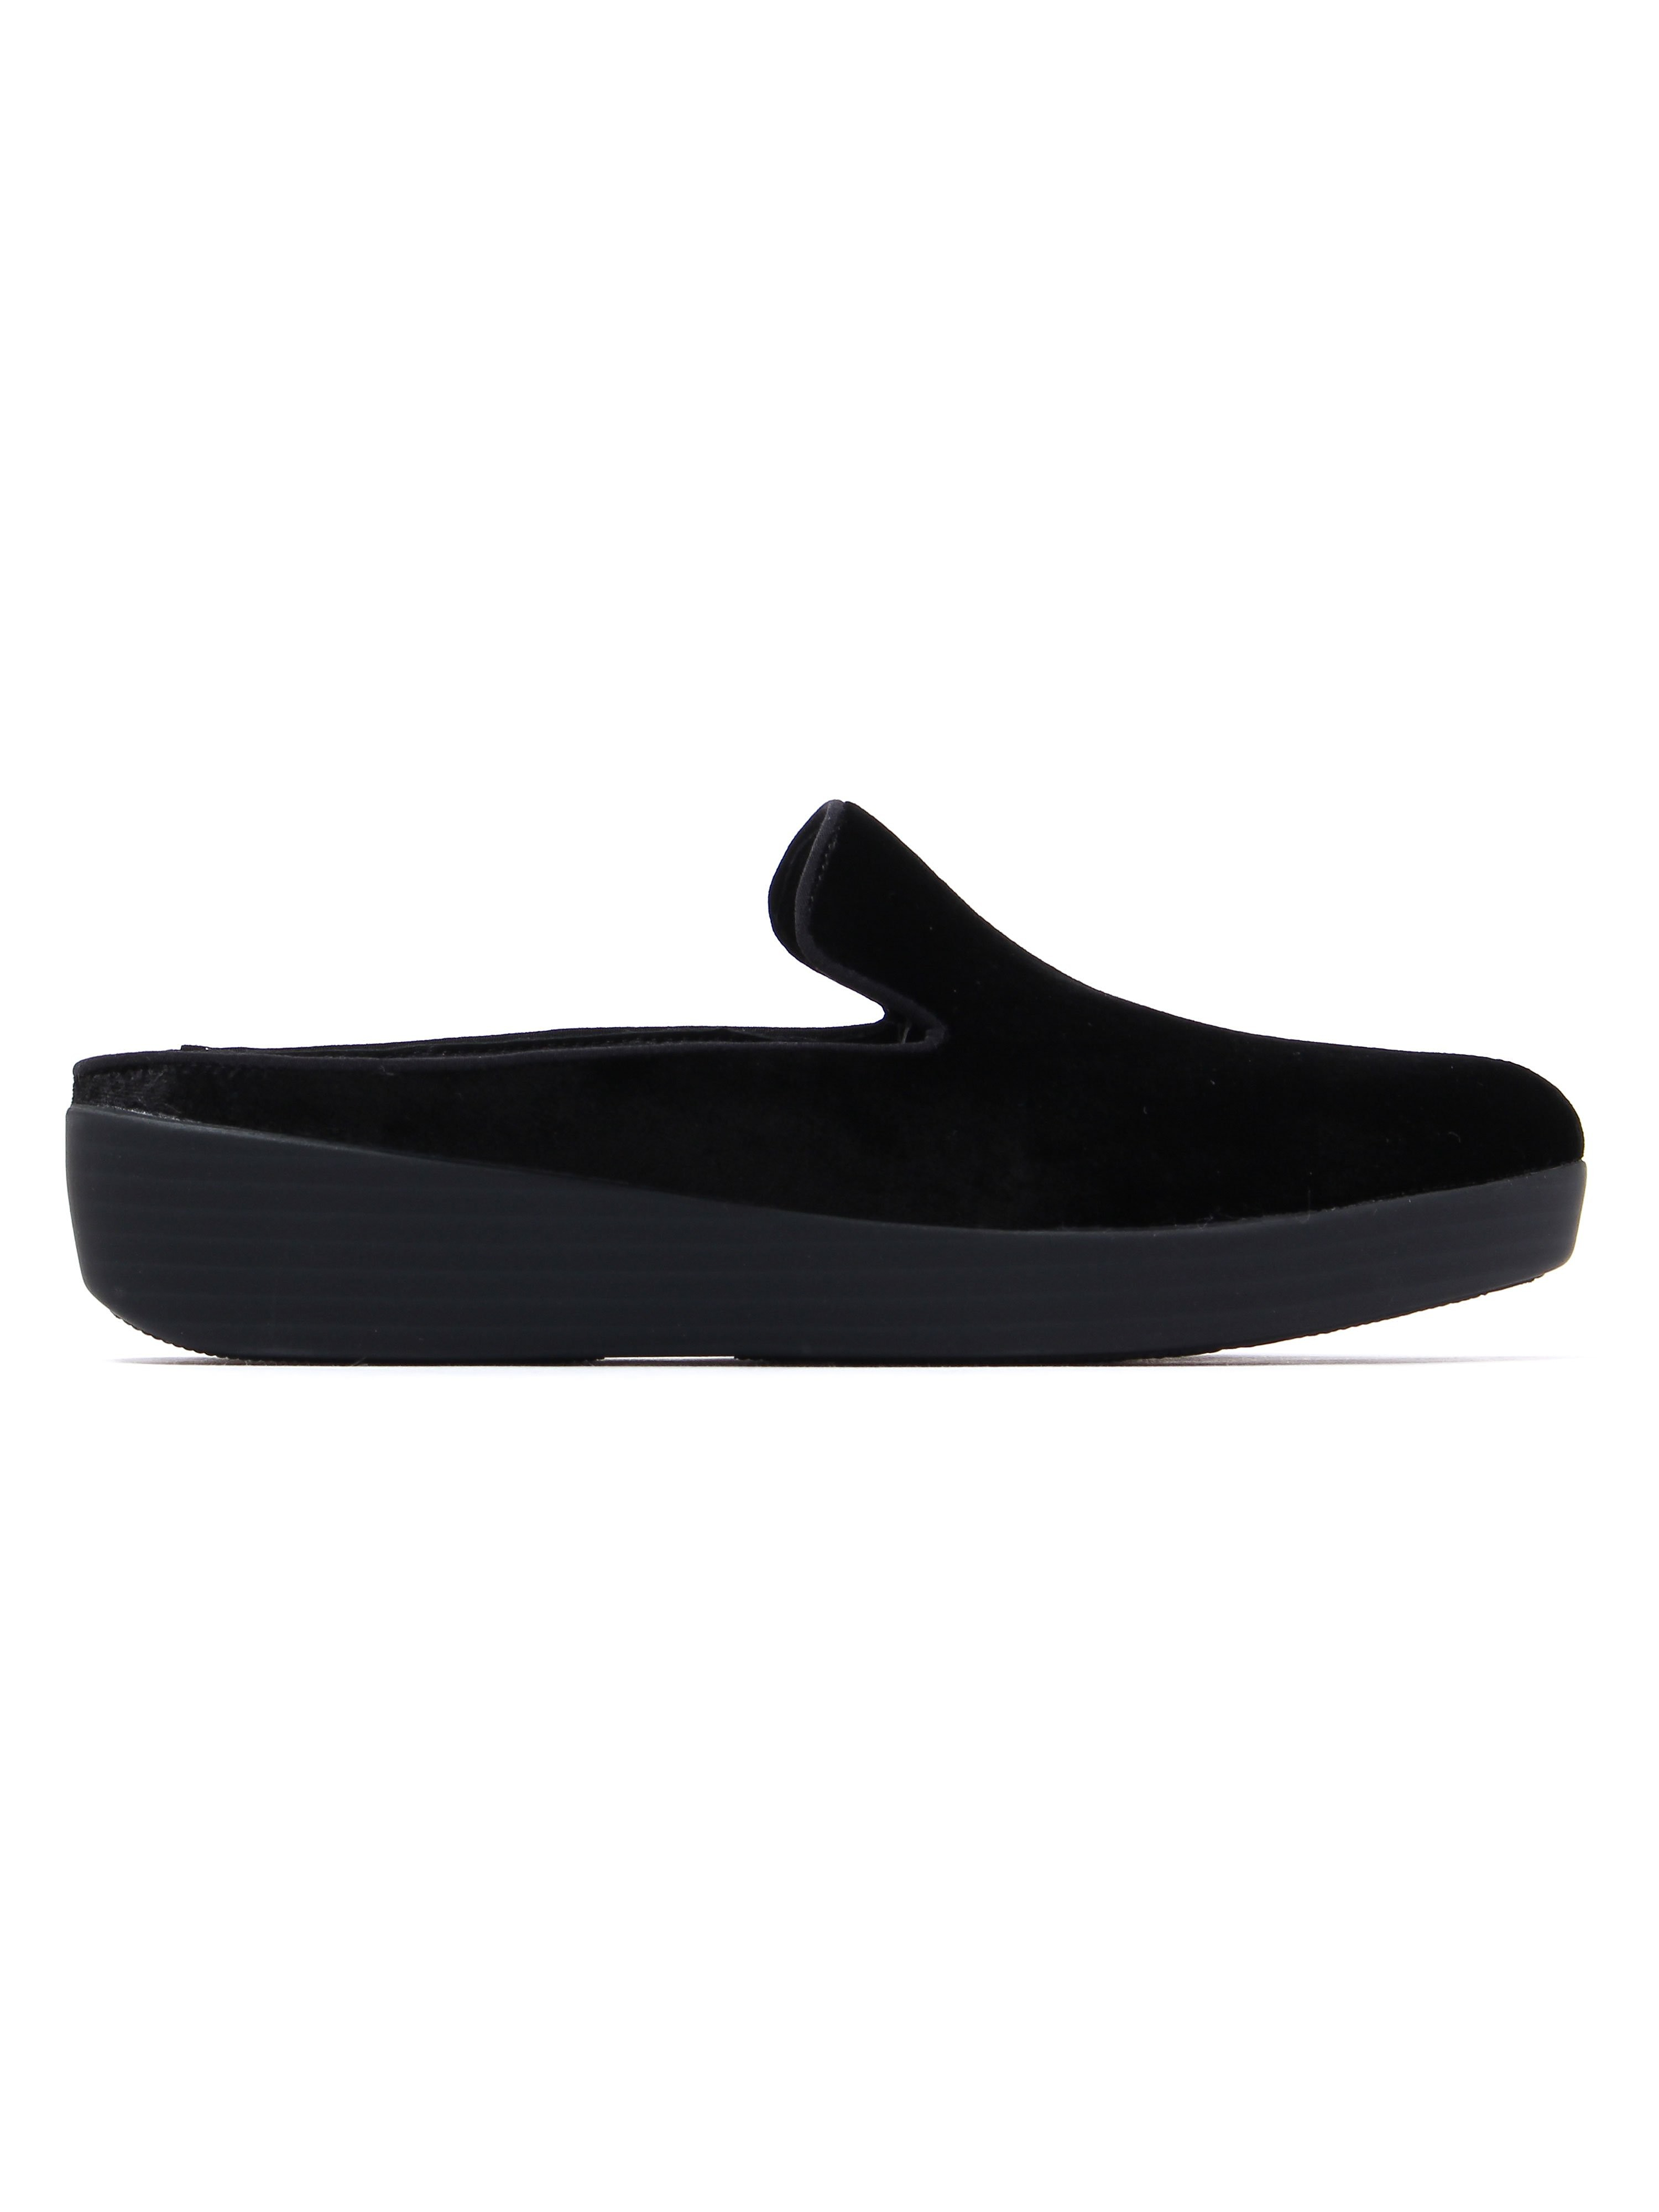 FitFlop Women's Superskate Mules - Black Velvet